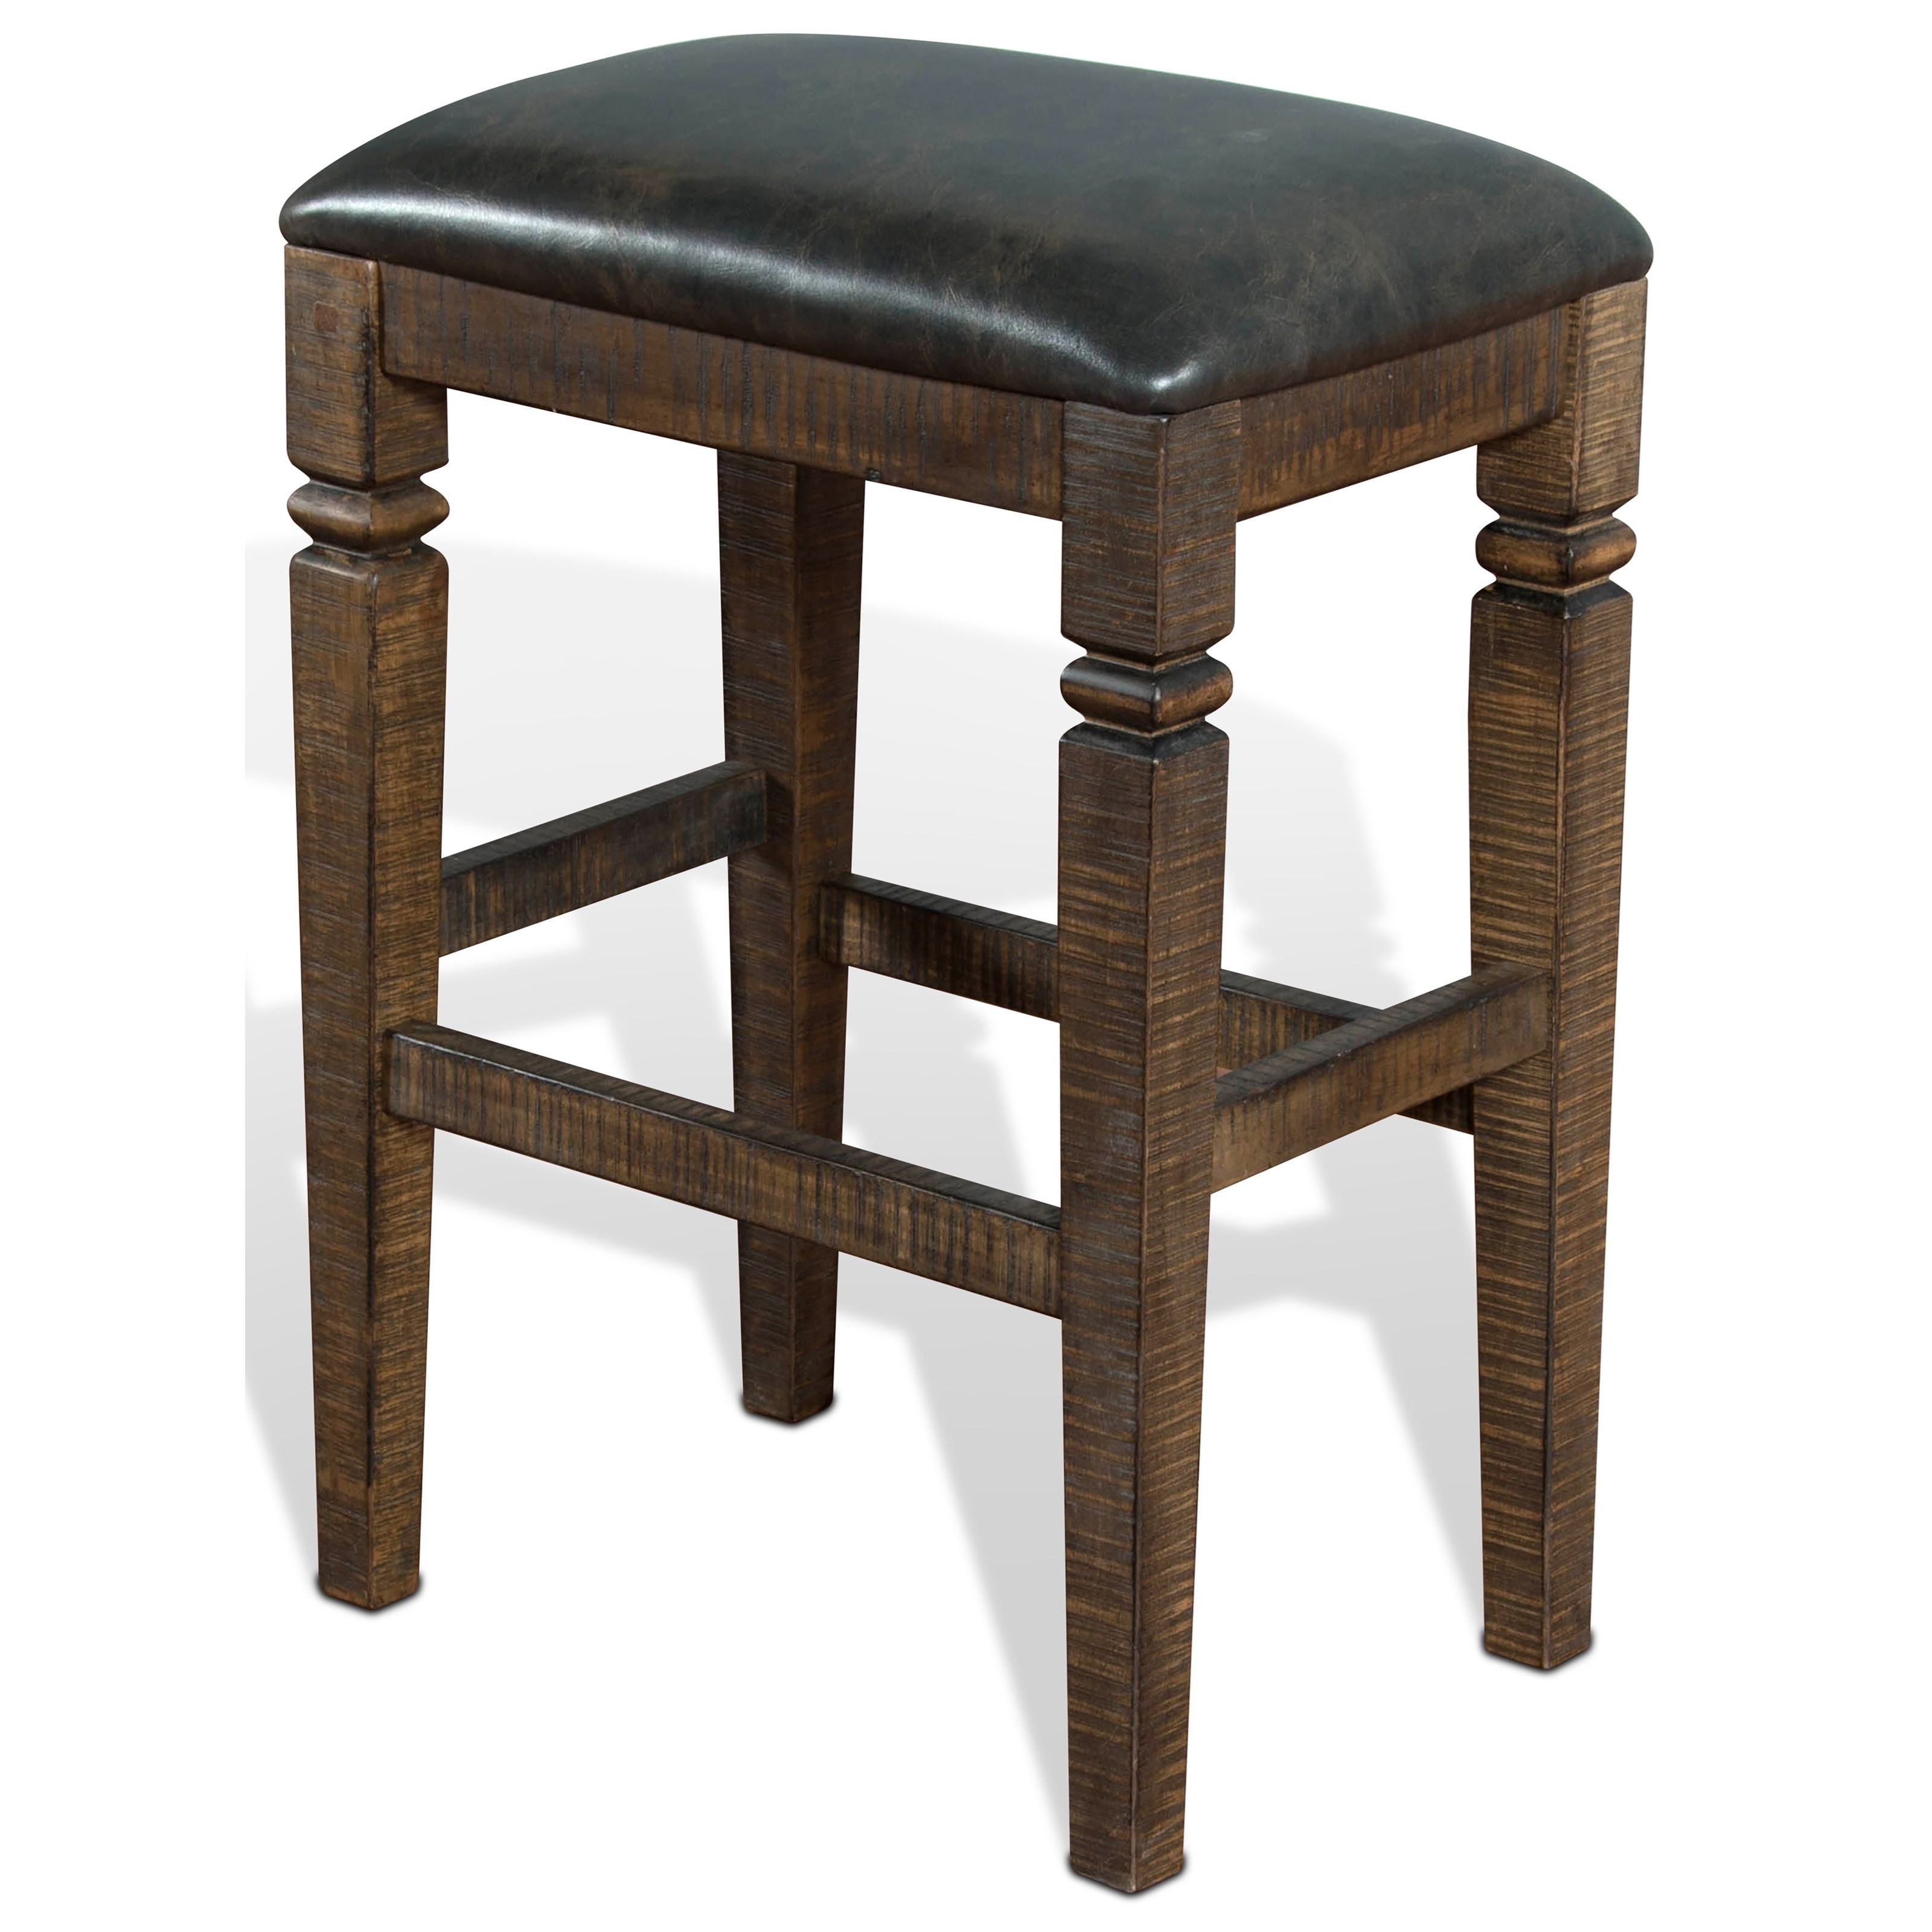 Homestead 2 Backless Stool w/ Cushion Seat by Sunny Designs at Sparks HomeStore